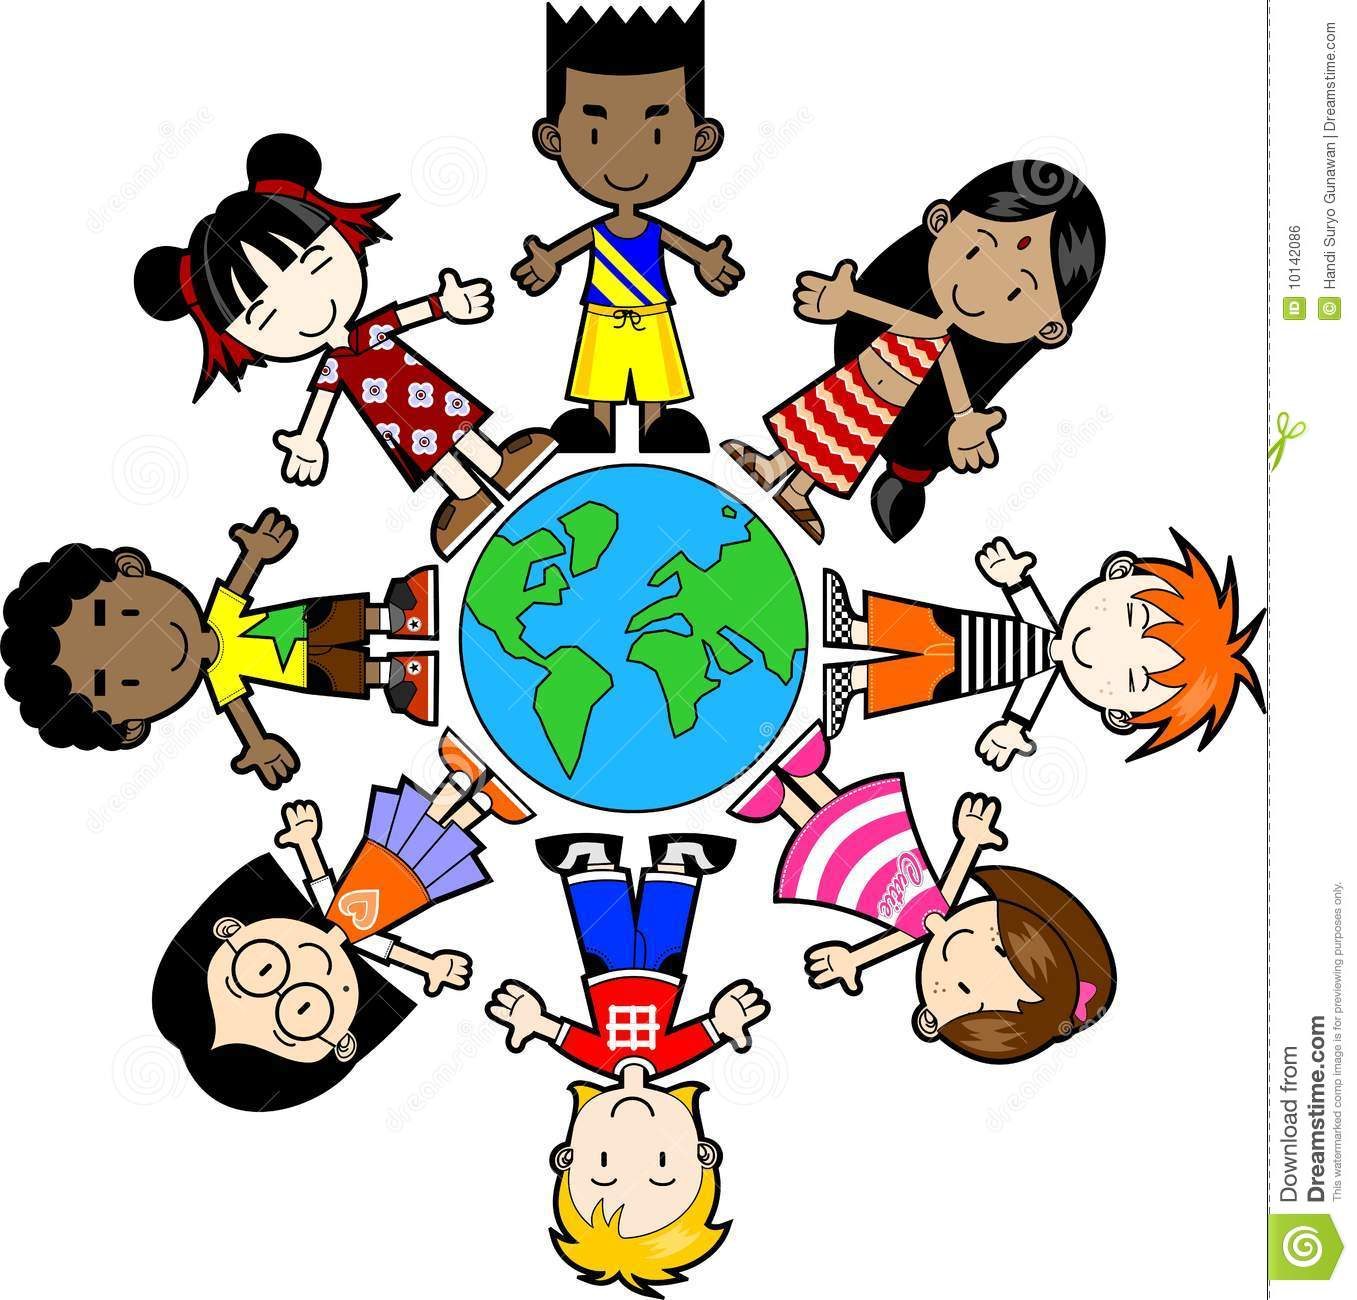 Different cultures around the world clipart.